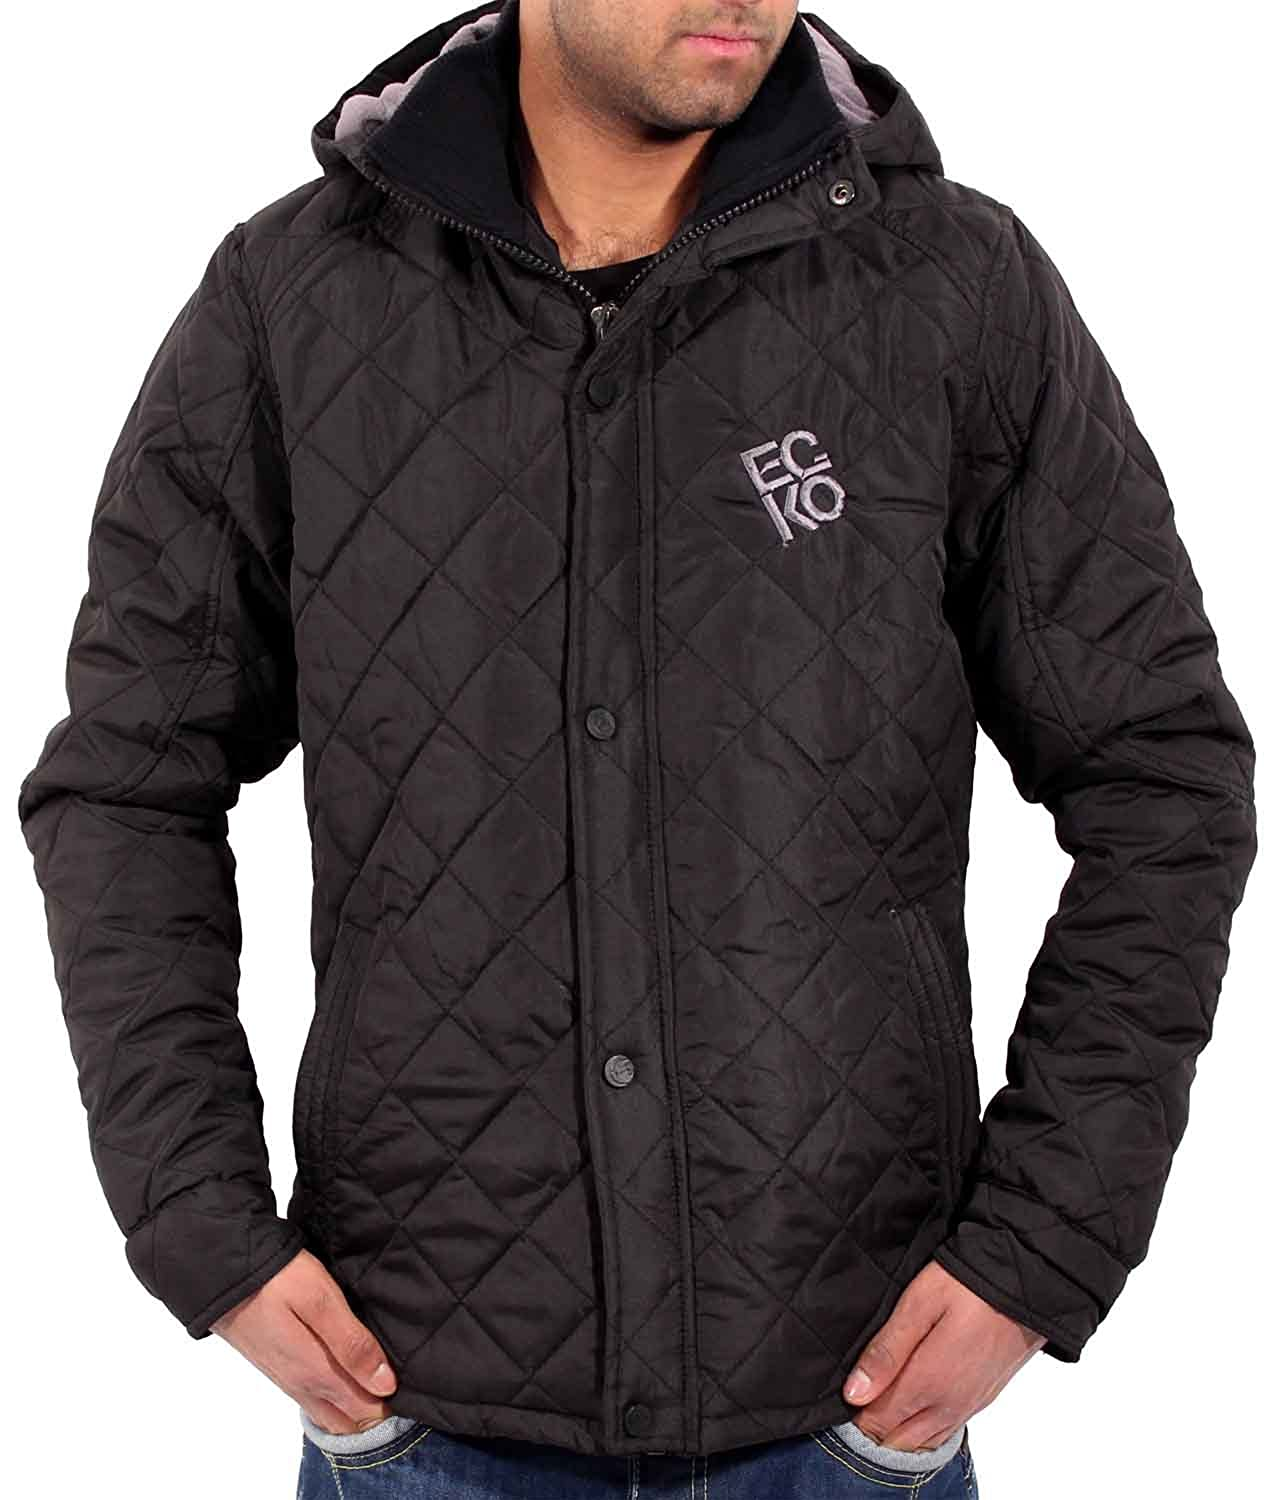 Ecko Mens Boys Warm Varsity Bomber Short Parka Hooded Quilted Style Jacket